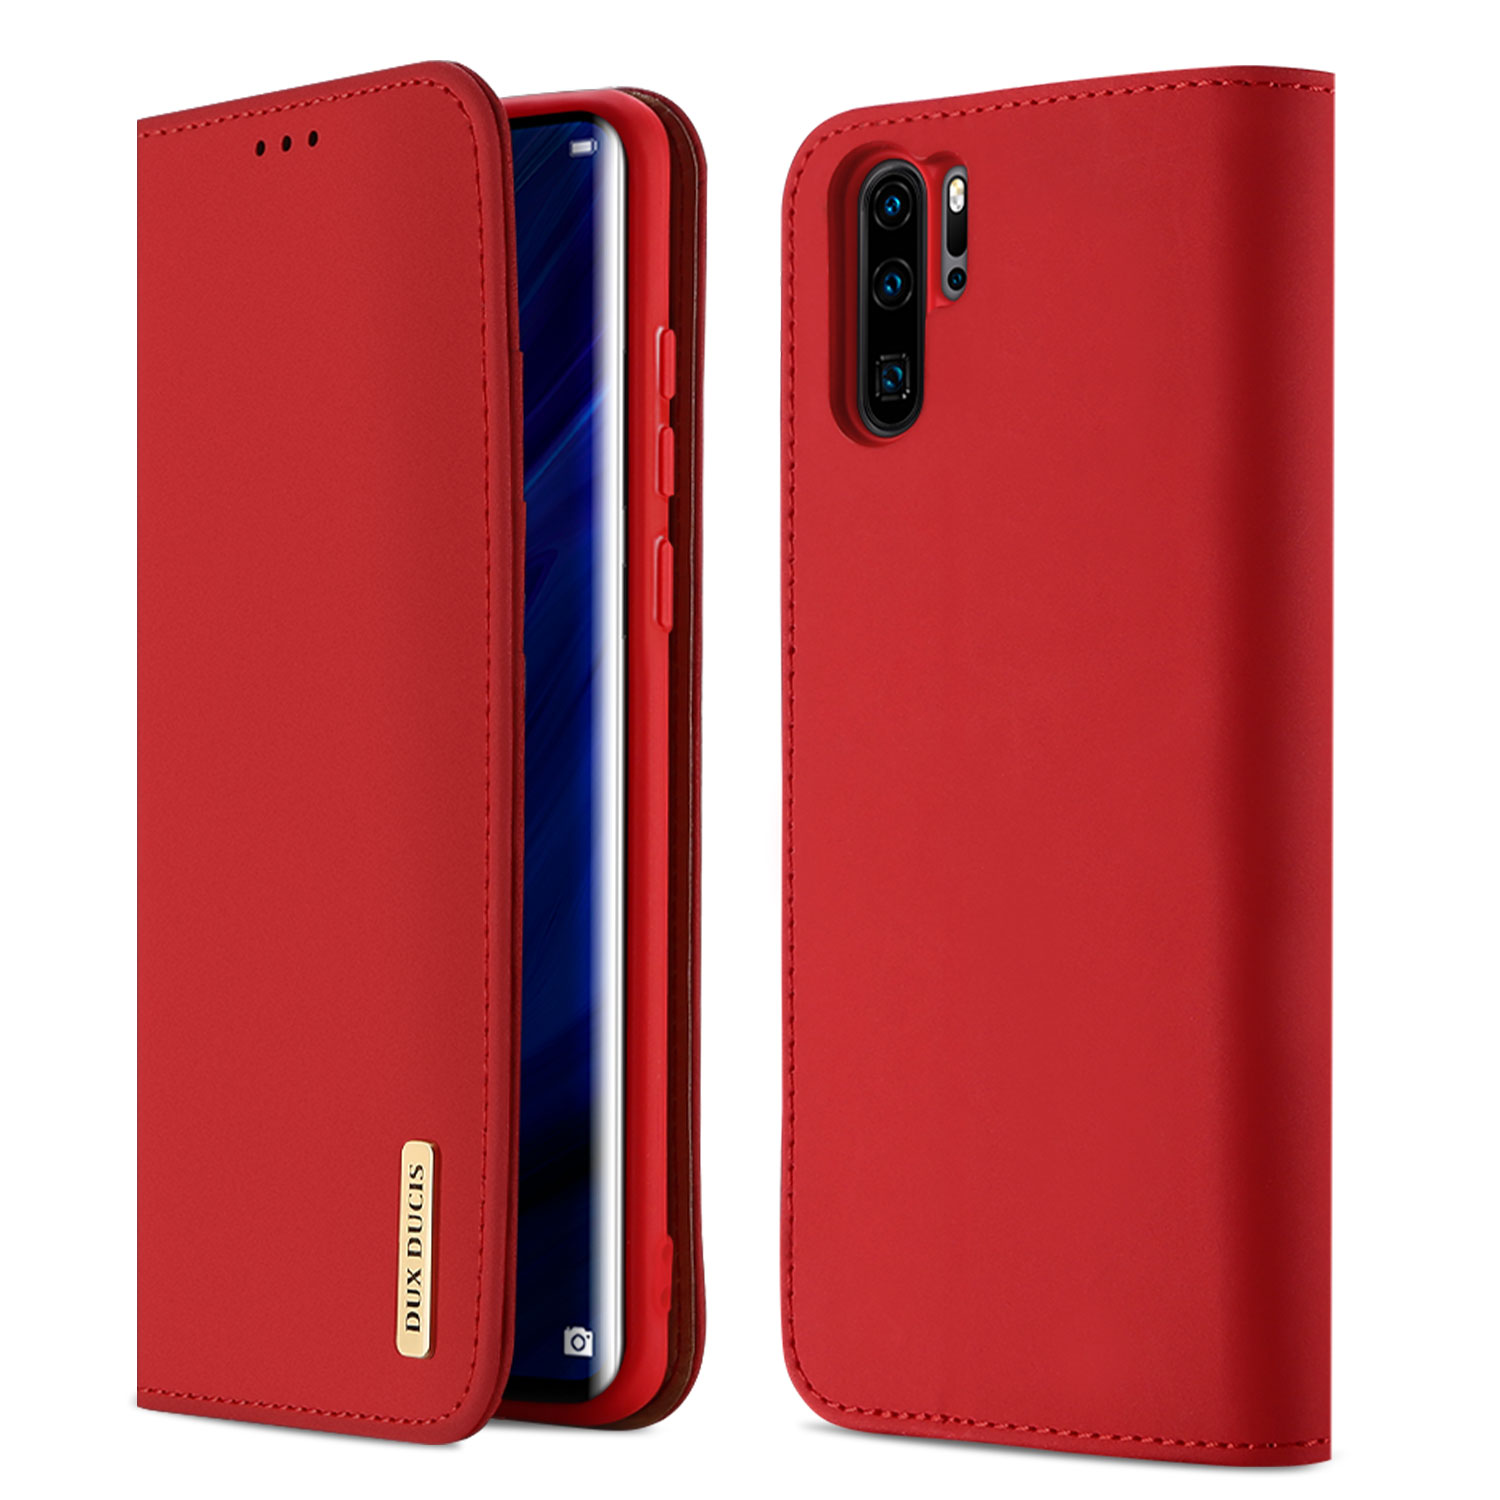 DUX DUCIS For Huawei P30 pro Luxury Genuine Leather Magnetic Flip Cover Full Protective Case with Bracket Card Slot red_Huawei P30 pro